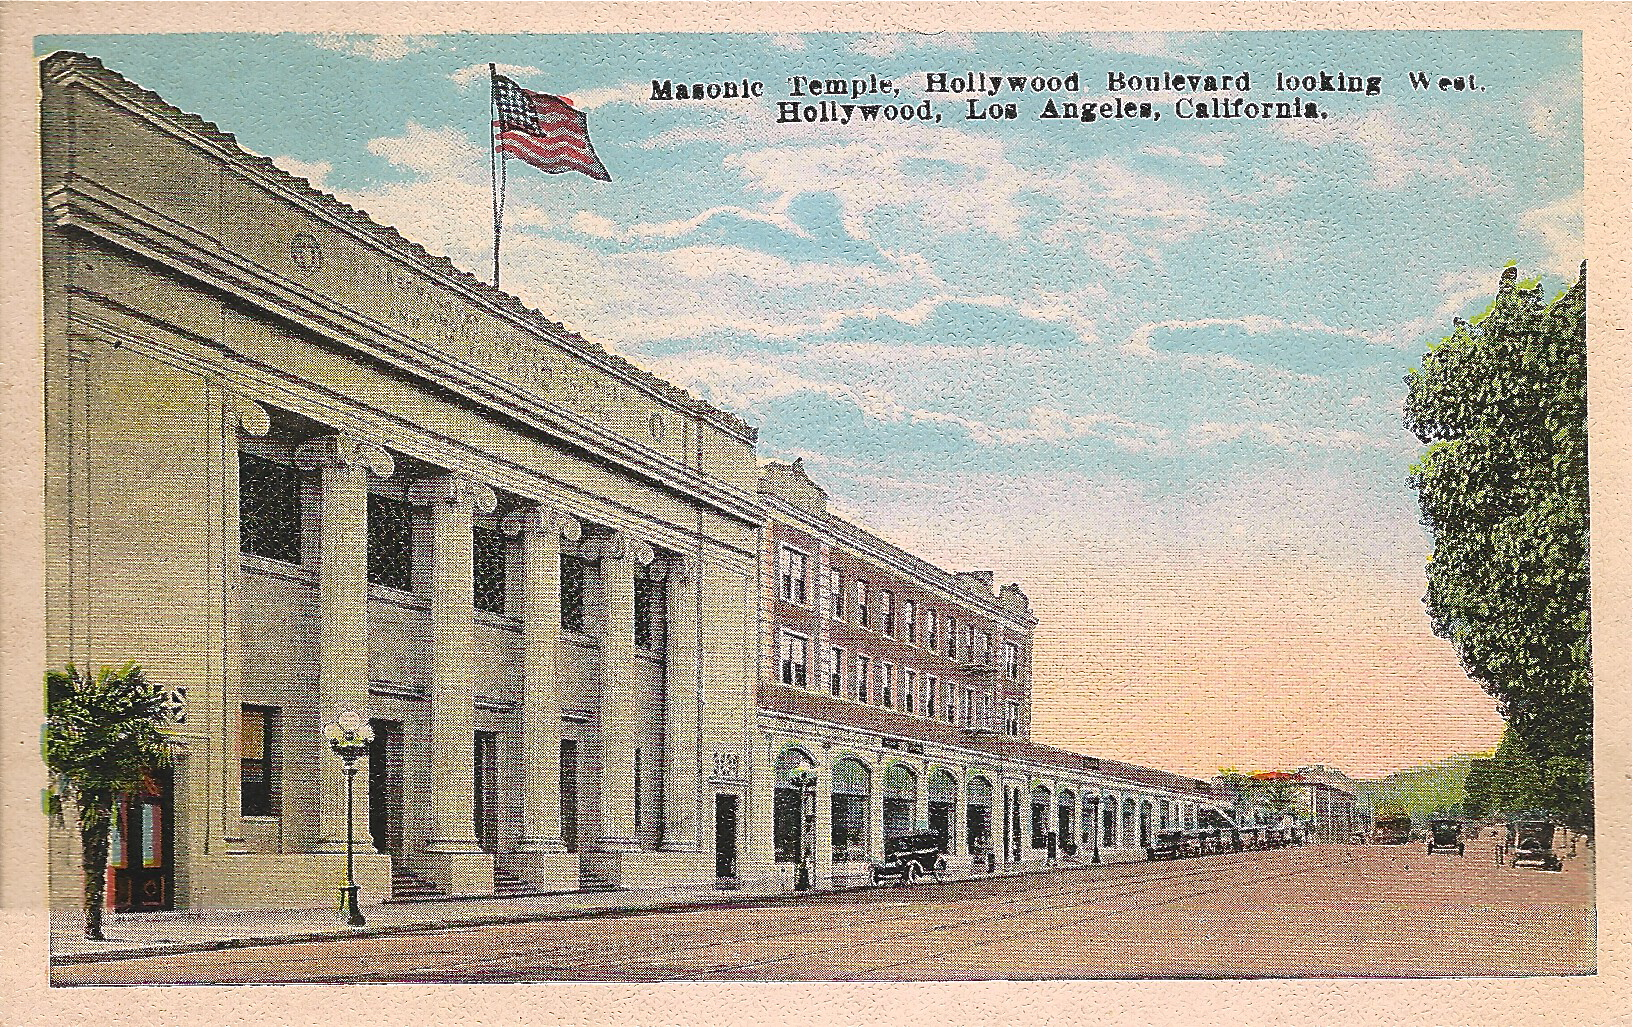 The old Masonic Temple on Hollywood Boulevard, looking west